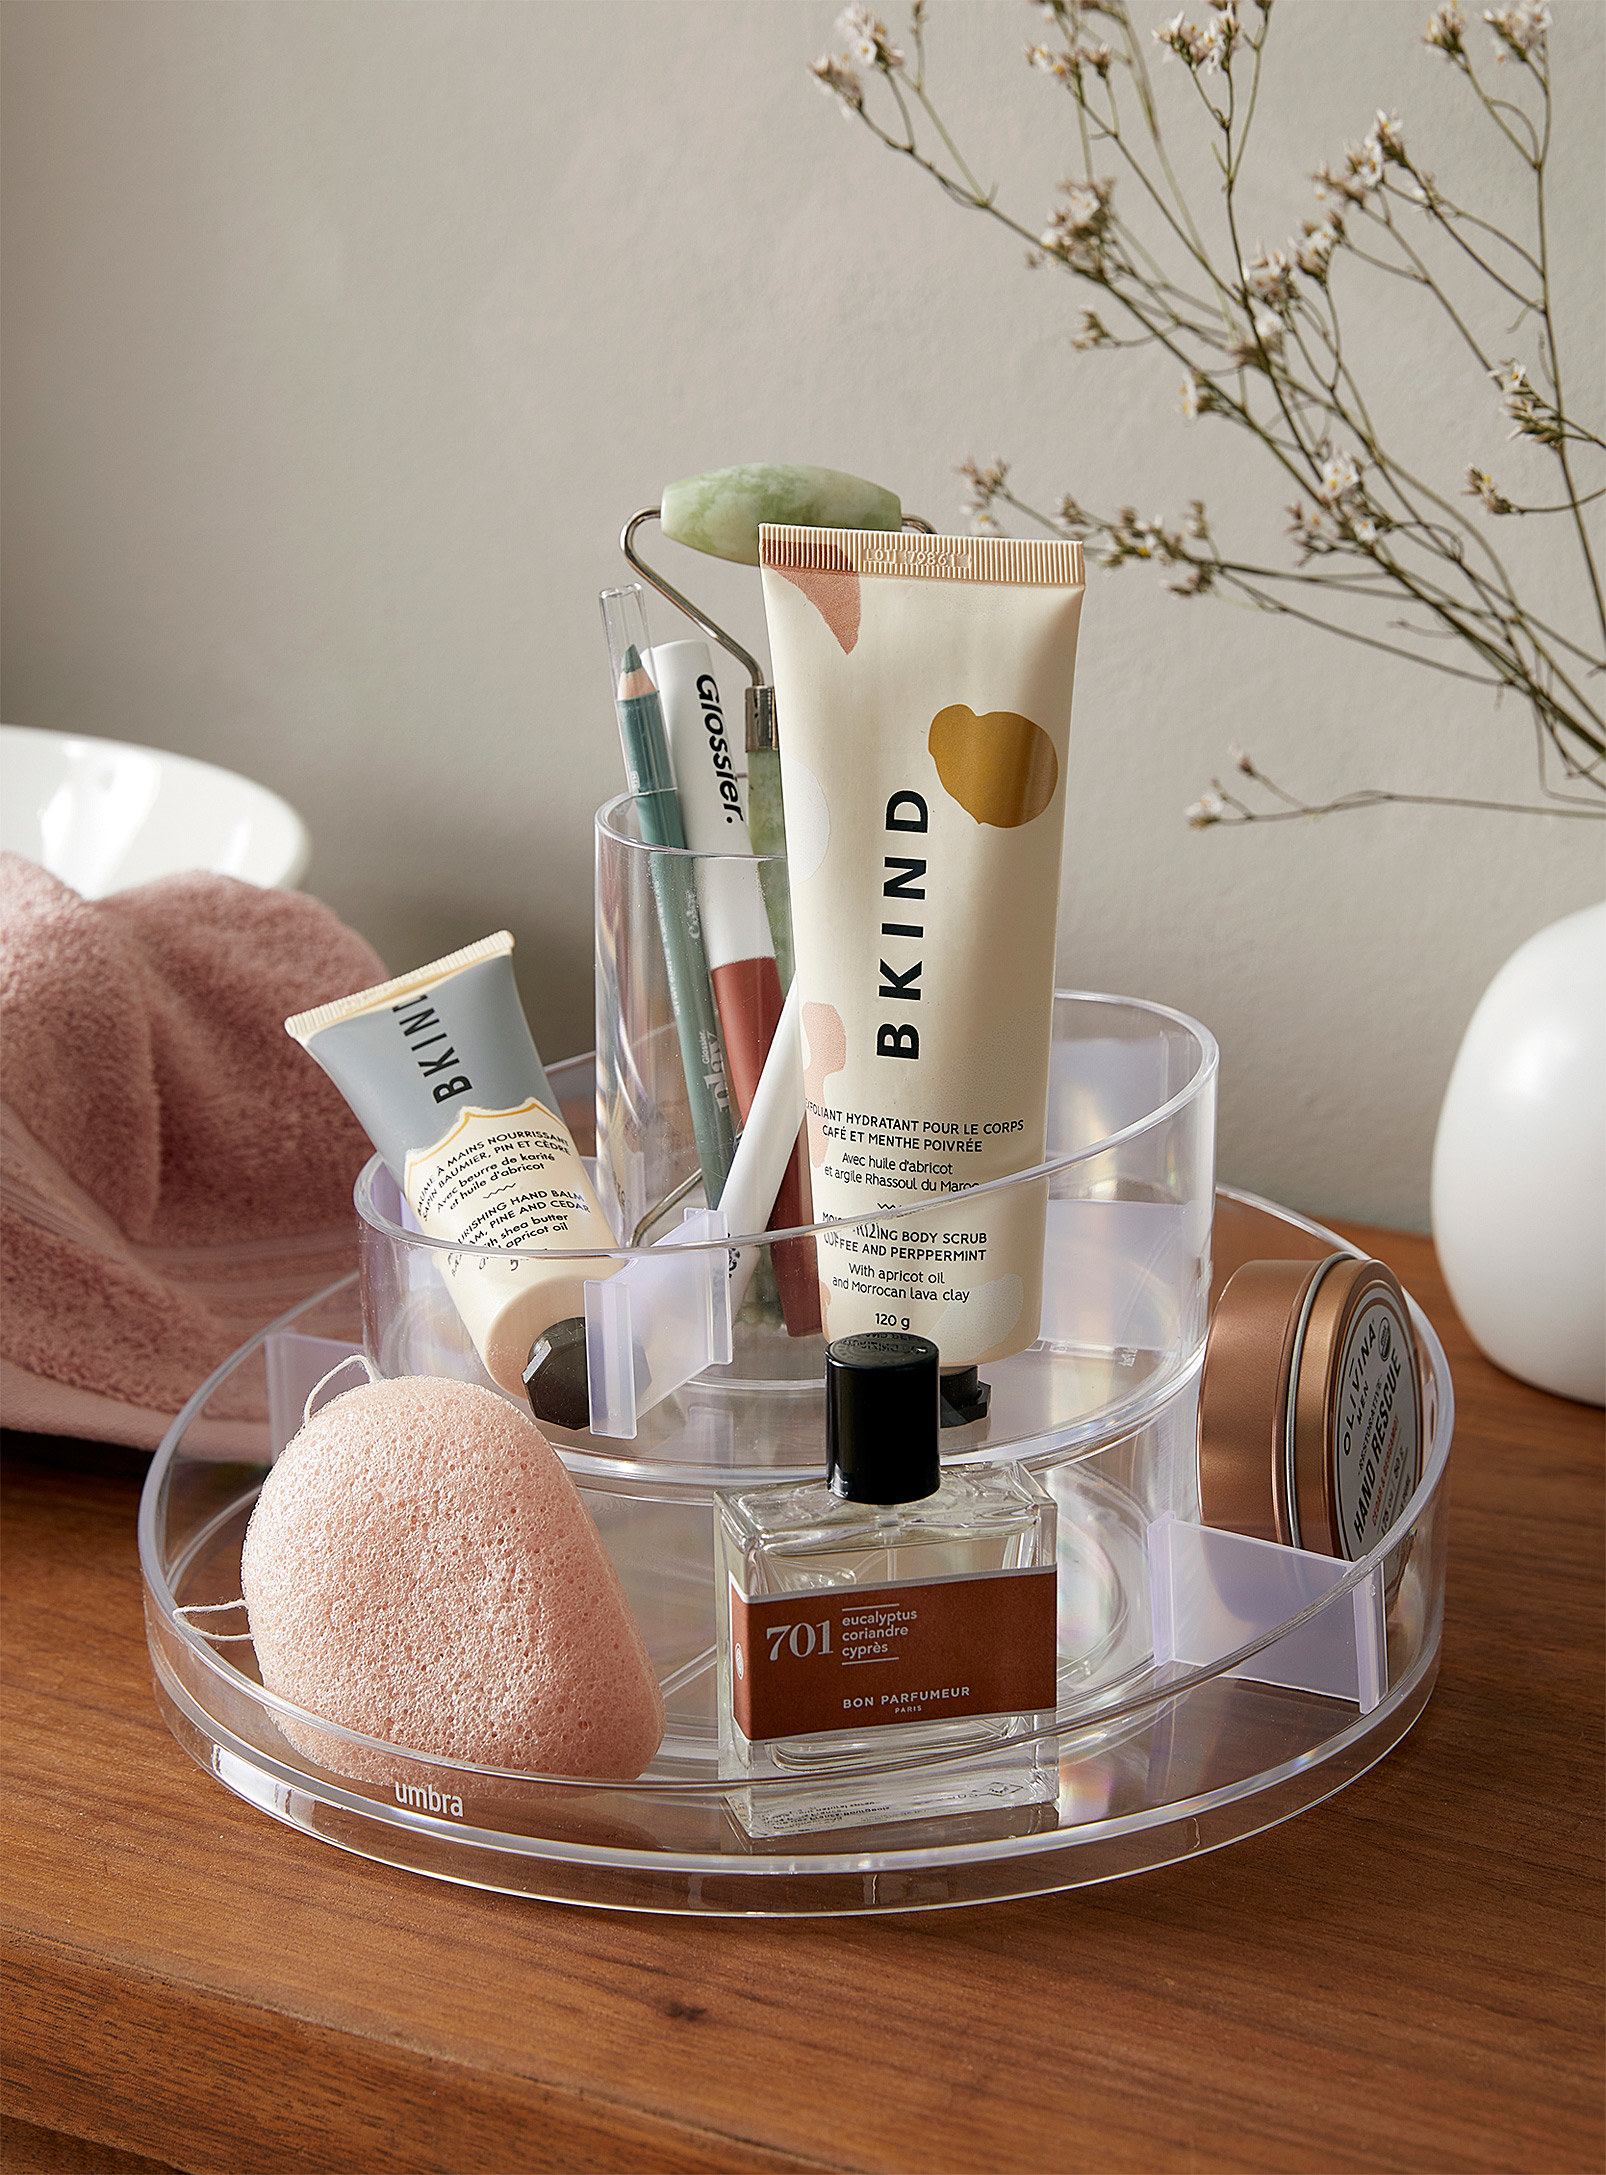 A round cosmetic organizer that's filled with small makeup and skincare products